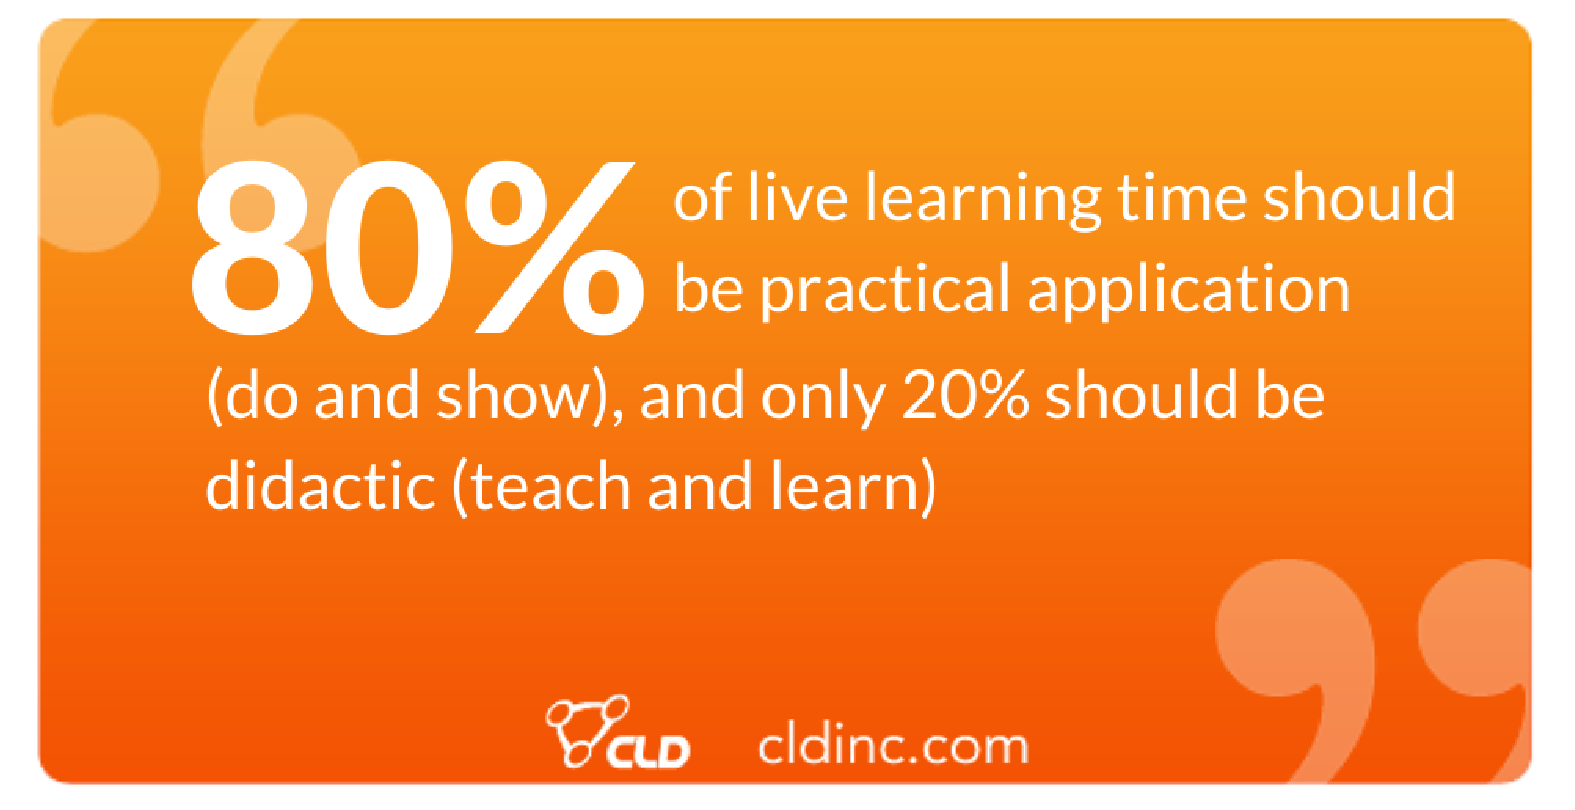 80% of live learning time should be practical application